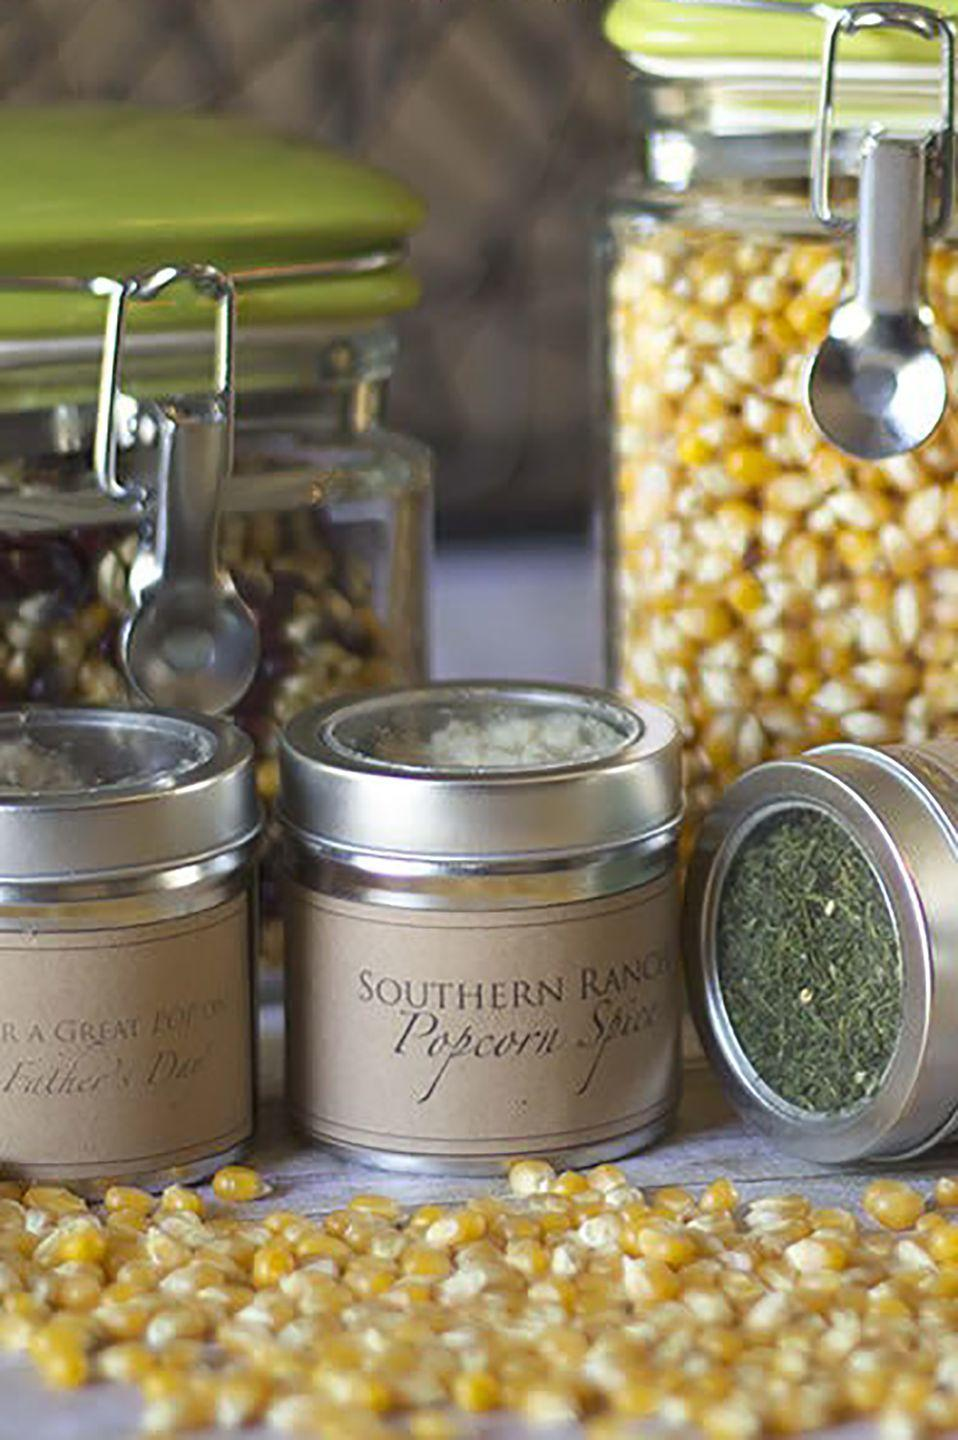 """<p>This creative gift is perfect for dads who like to enjoy popcorn every time they watch a movie. You can whip up different seasonings with just four or five ingredients each!</p><p><strong>Get the tutorial at <a href=""""https://diyprojects.com/fathers-day-gift-ideas/"""" rel=""""nofollow noopener"""" target=""""_blank"""" data-ylk=""""slk:DIY Projects"""" class=""""link rapid-noclick-resp"""">DIY Projects</a>. </strong></p><p><strong><a class=""""link rapid-noclick-resp"""" href=""""https://www.amazon.com/dp/B01FY69CPS/ref=sspa_dk_detail_0?psc=1&pd_rd_i=B01FY69CPS&pd_rd_w=MTL33&pf_rd_p=48d372c1-f7e1-4b8b-9d02-4bd86f5158c5&pd_rd_wg=8opck&pf_rd_r=77WF4WFQ06A7ZFEBVTXH&pd_rd_r=f2b36a70-6046-476c-b1a8-cc6aca805025&spLa=ZW5jcnlwdGVkUXVhbGlmaWVyPUEyMVE3WTk0RDZJMThSJmVuY3J5cHRlZElkPUEwMTY3OTE0MVVYTTlDT1FQSjVTJmVuY3J5cHRlZEFkSWQ9QTAyMTk4NDAxQjBMWlpPNEdVUVRQJndpZGdldE5hbWU9c3BfZGV0YWlsJmFjdGlvbj1jbGlja1JlZGlyZWN0JmRvTm90TG9nQ2xpY2s9dHJ1ZQ%3D%3D&tag=syn-yahoo-20&ascsubtag=%5Bartid%7C10050.g.1171%5Bsrc%7Cyahoo-us"""" rel=""""nofollow noopener"""" target=""""_blank"""" data-ylk=""""slk:SHOP SPICE TINS"""">SHOP SPICE TINS</a></strong></p>"""